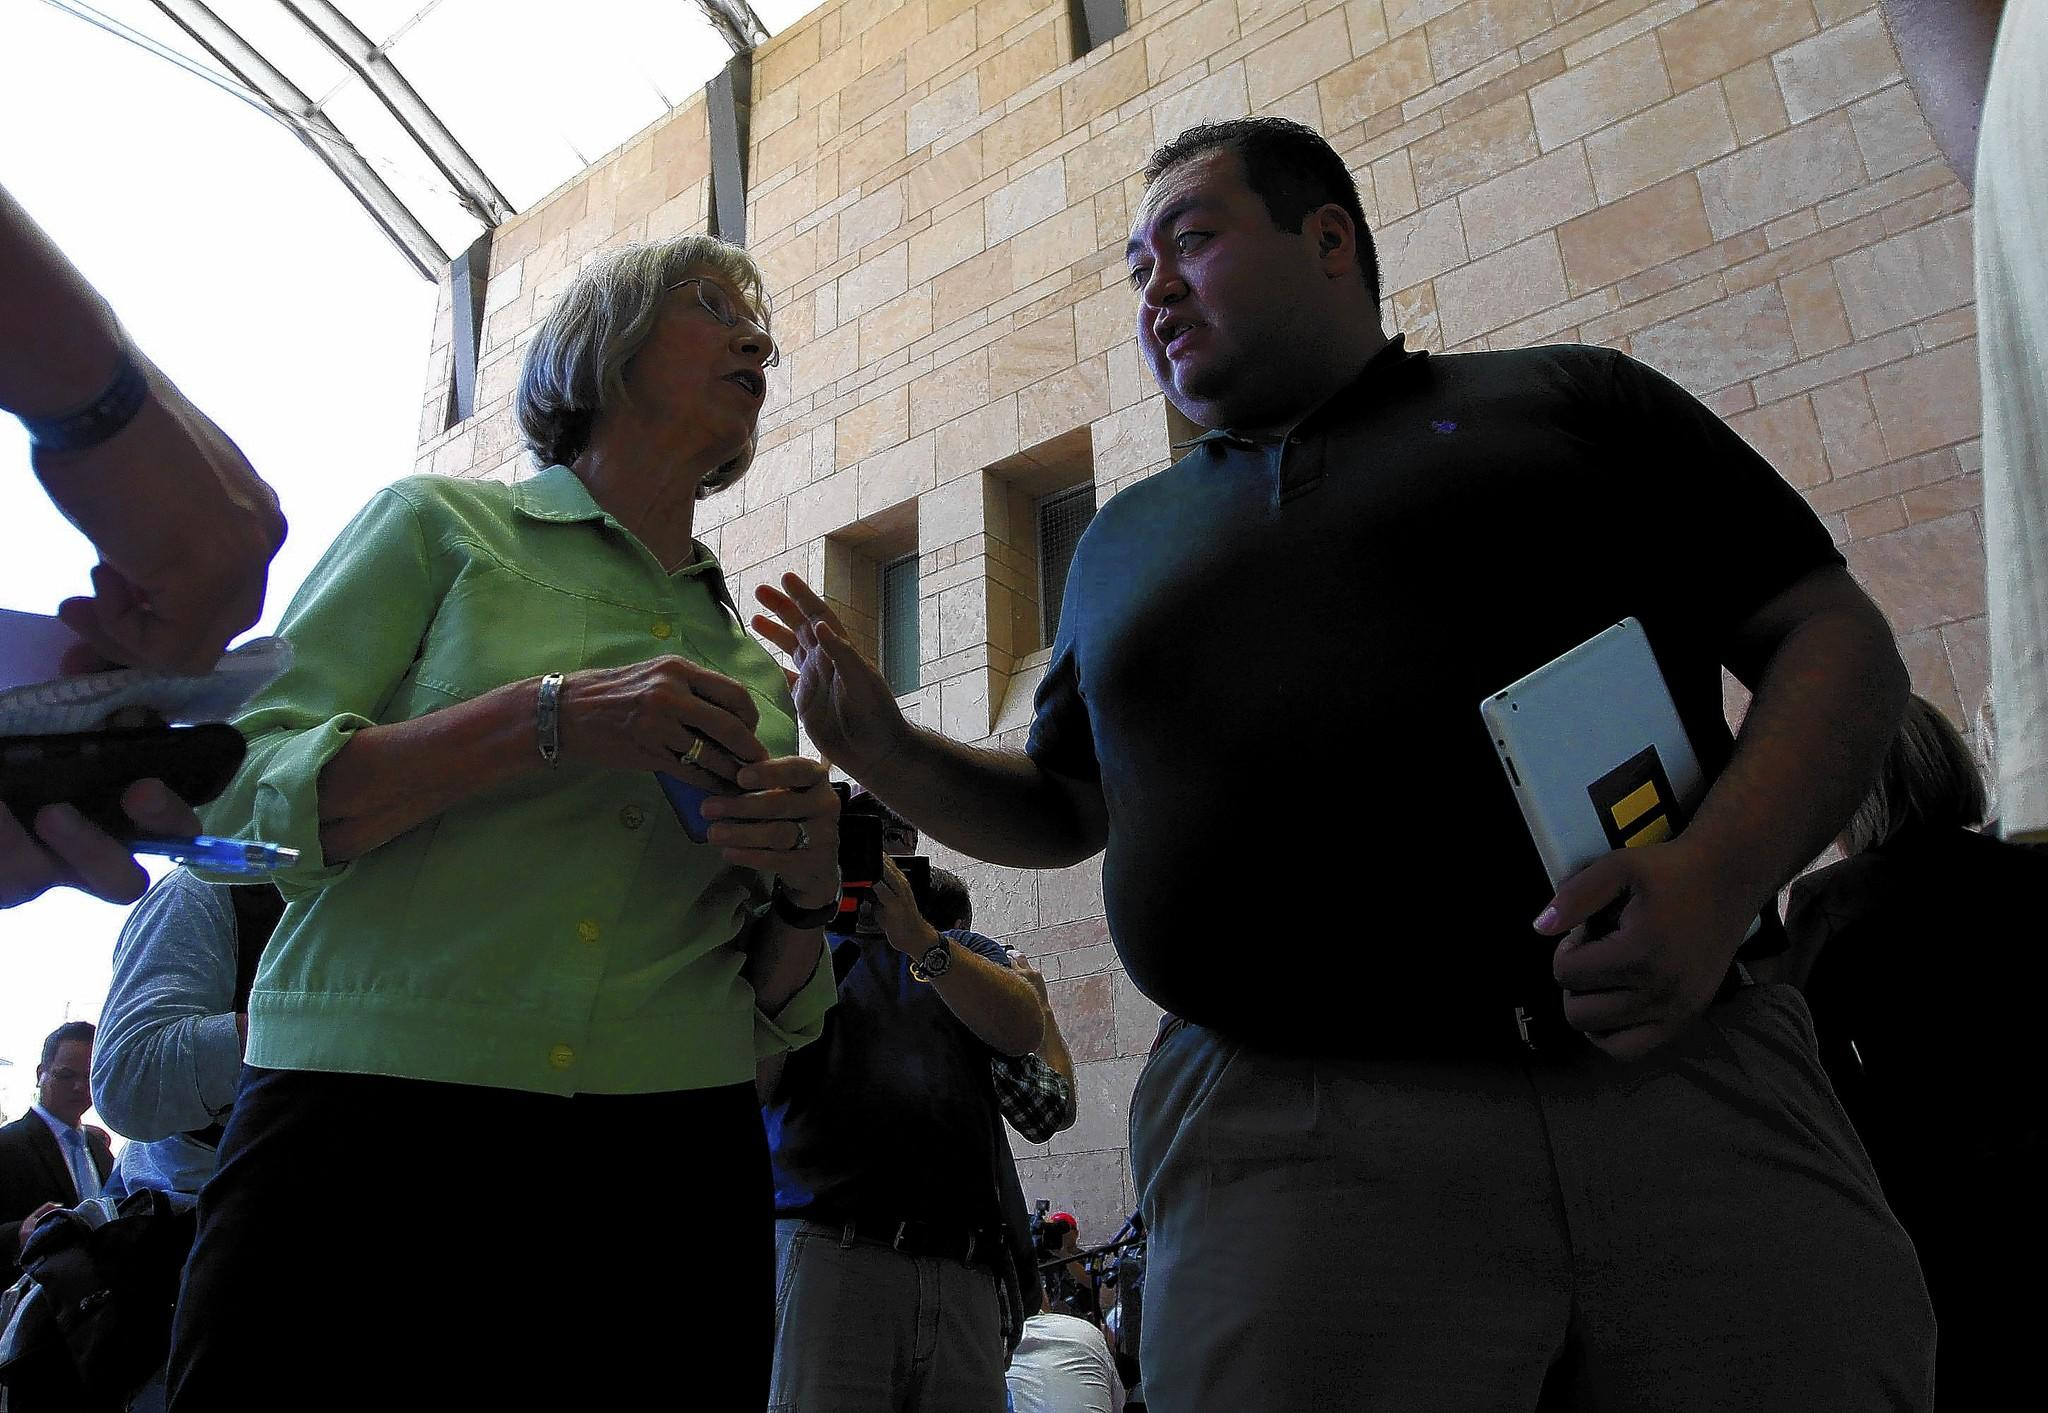 Daniel Hernandez Jr. speaks with Pam Simon, a former member of Rep. Gabrielle Giffords' staff, in Tucson in 2012. Simon was one of the wounded in the 2011 shooting.